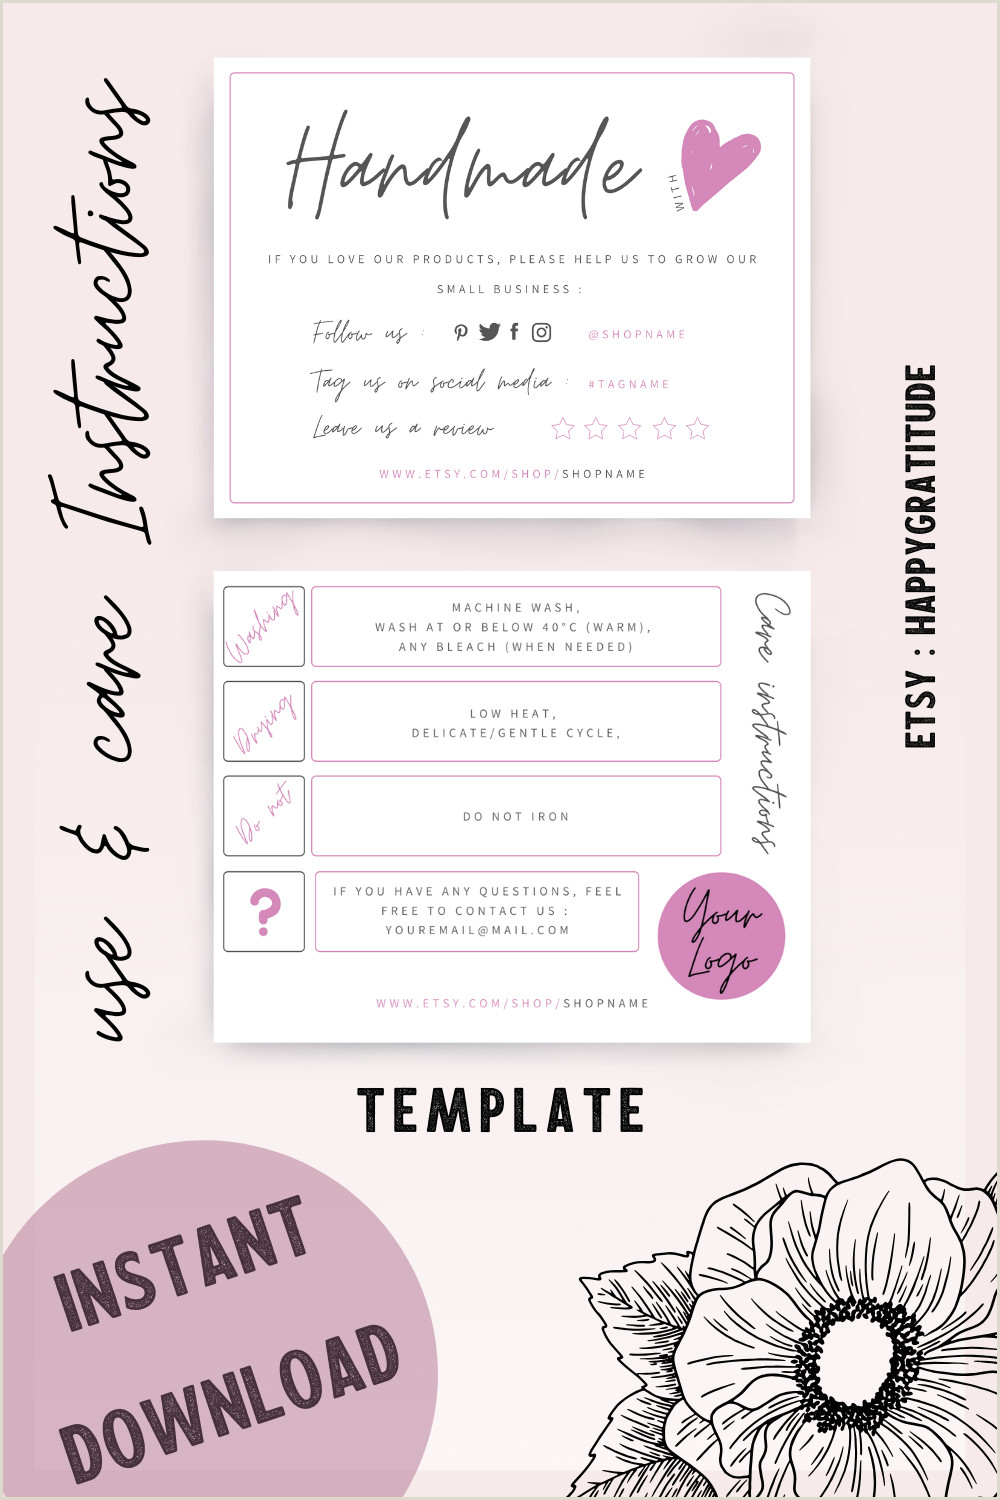 Busines Card Design Instant Download Card With Care & Use Instructions Diy